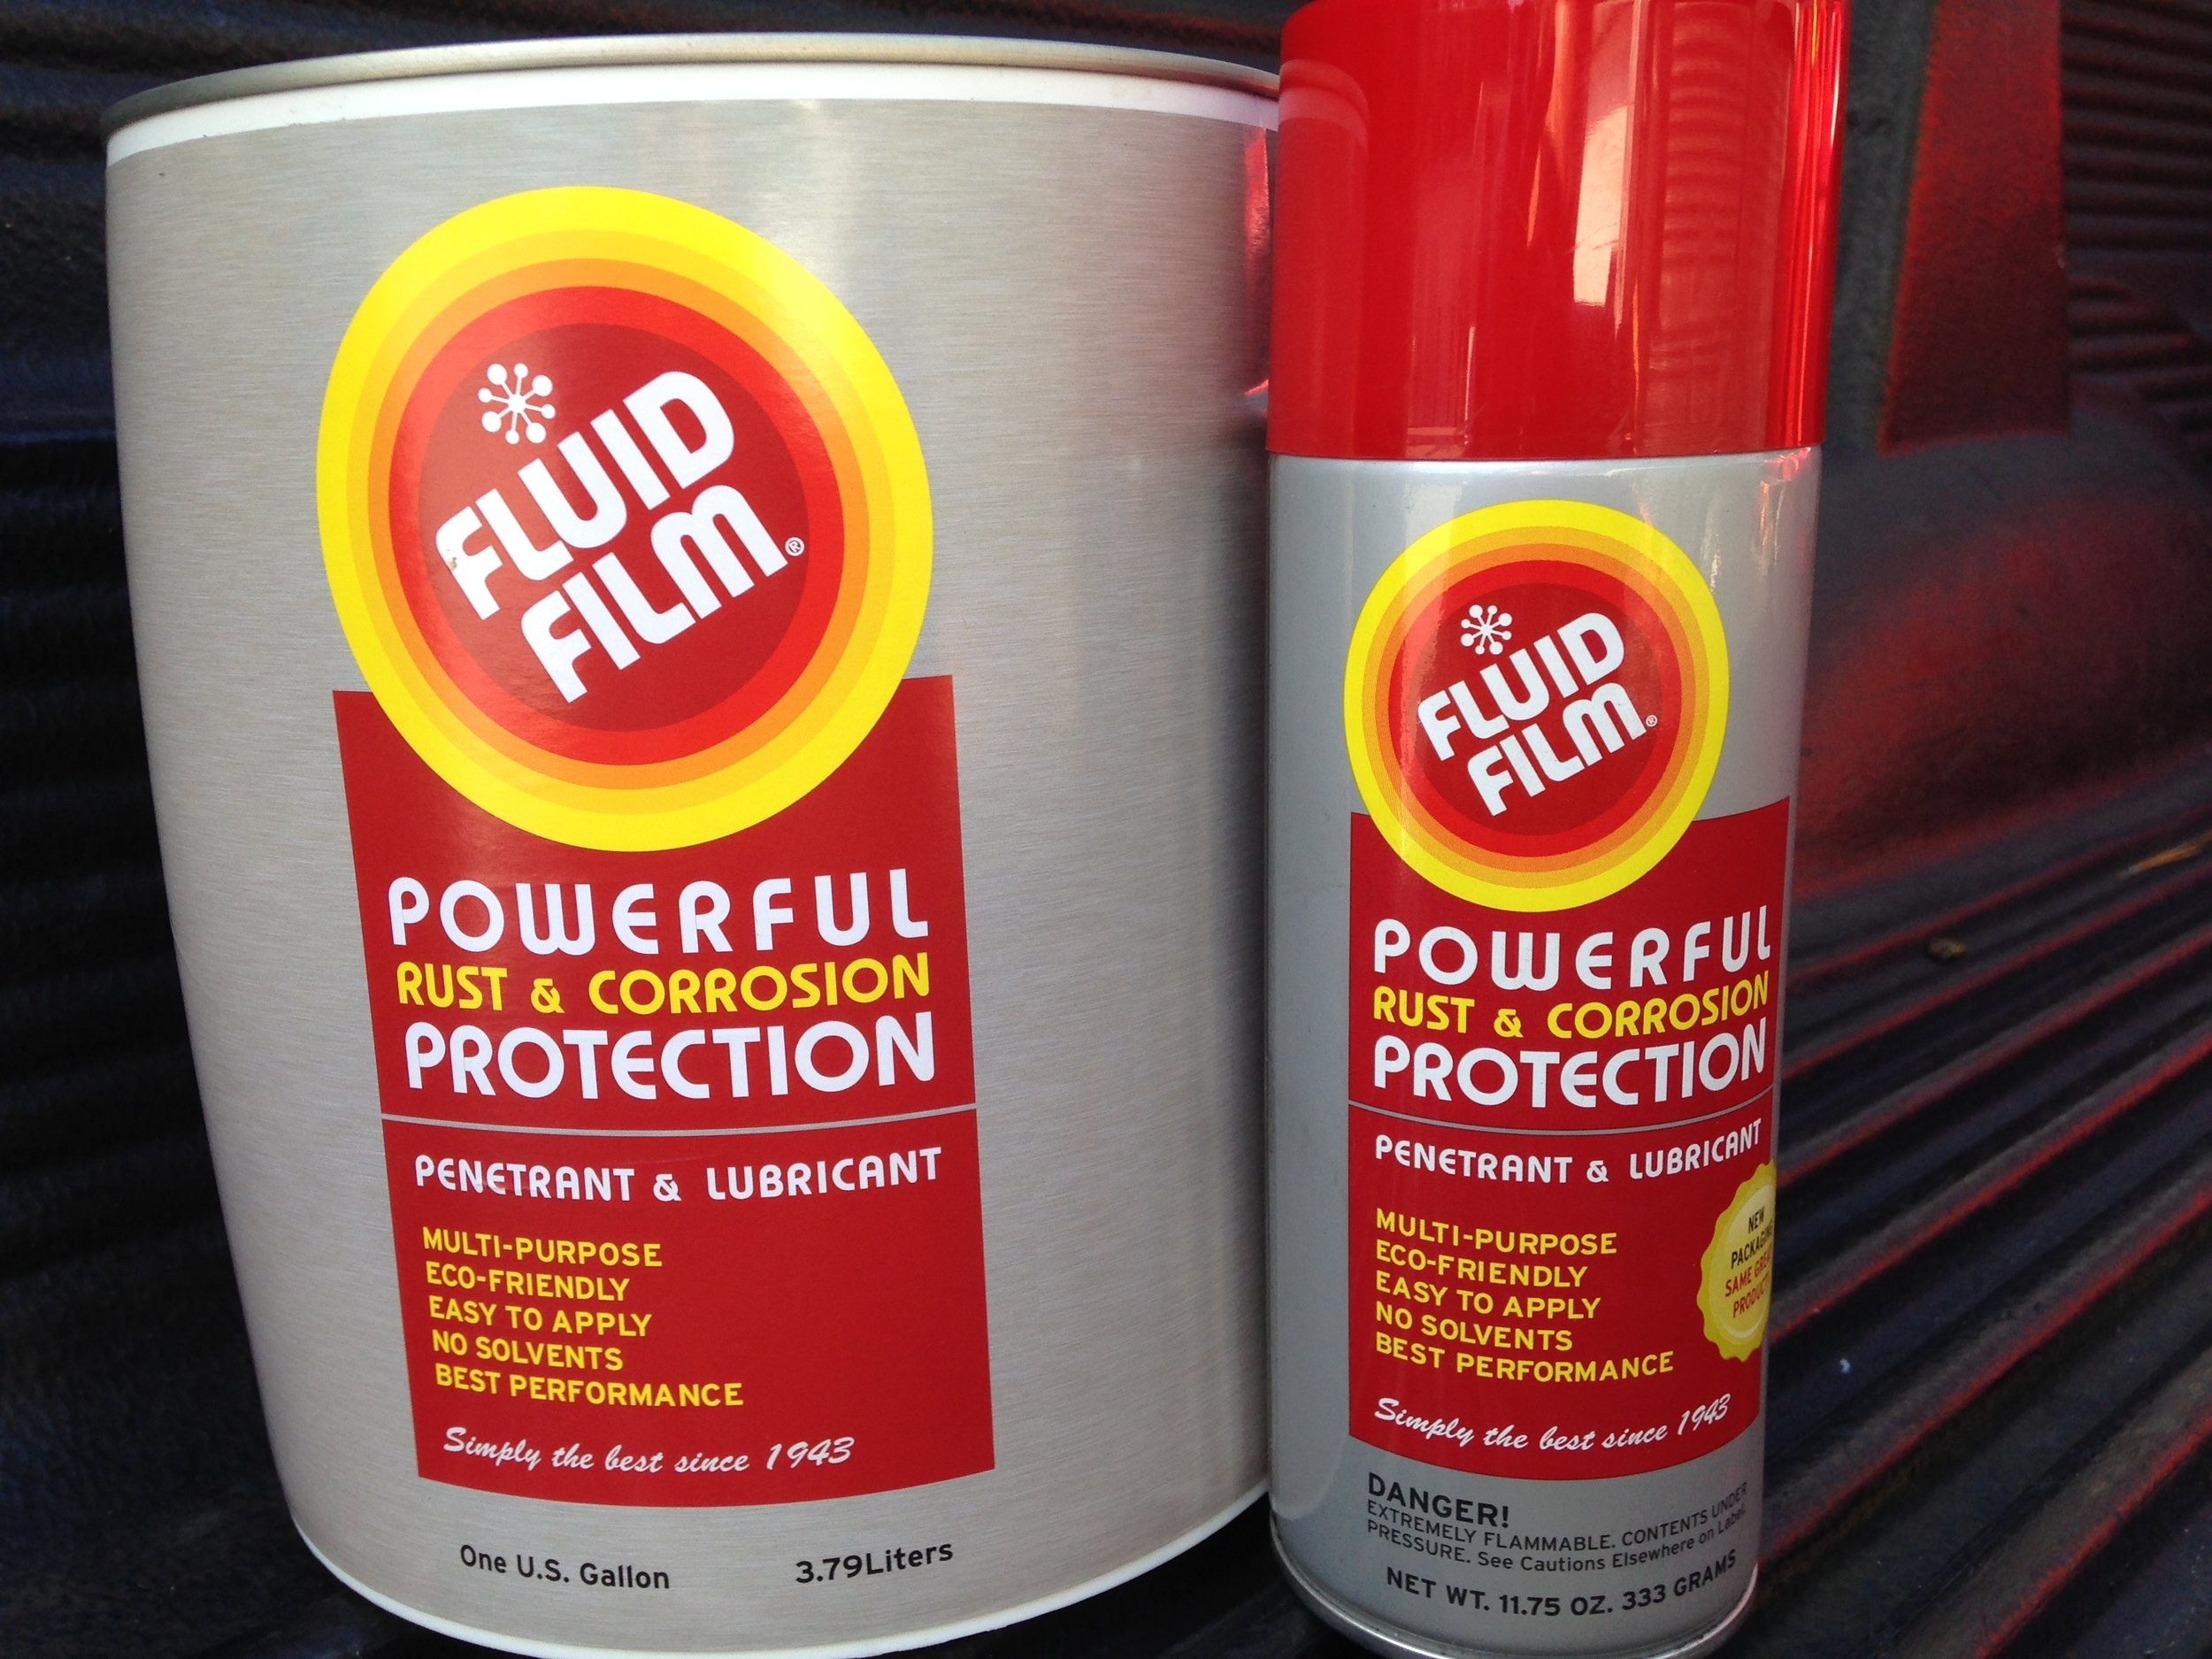 fluid film cans, fluid film, lubricant, eco friendly, rust, powerful, corrosion, protection, penetrant, multi-purpose, eco-friendly, easy apply, no solvents, protects, all metals, non-toxic, hazardous, long lasting, lanolin, factory direct, spray, can, drum, bin, pallet, bulk, gallon, manufacturer rep, drop ship, aerosol, environmental friendly